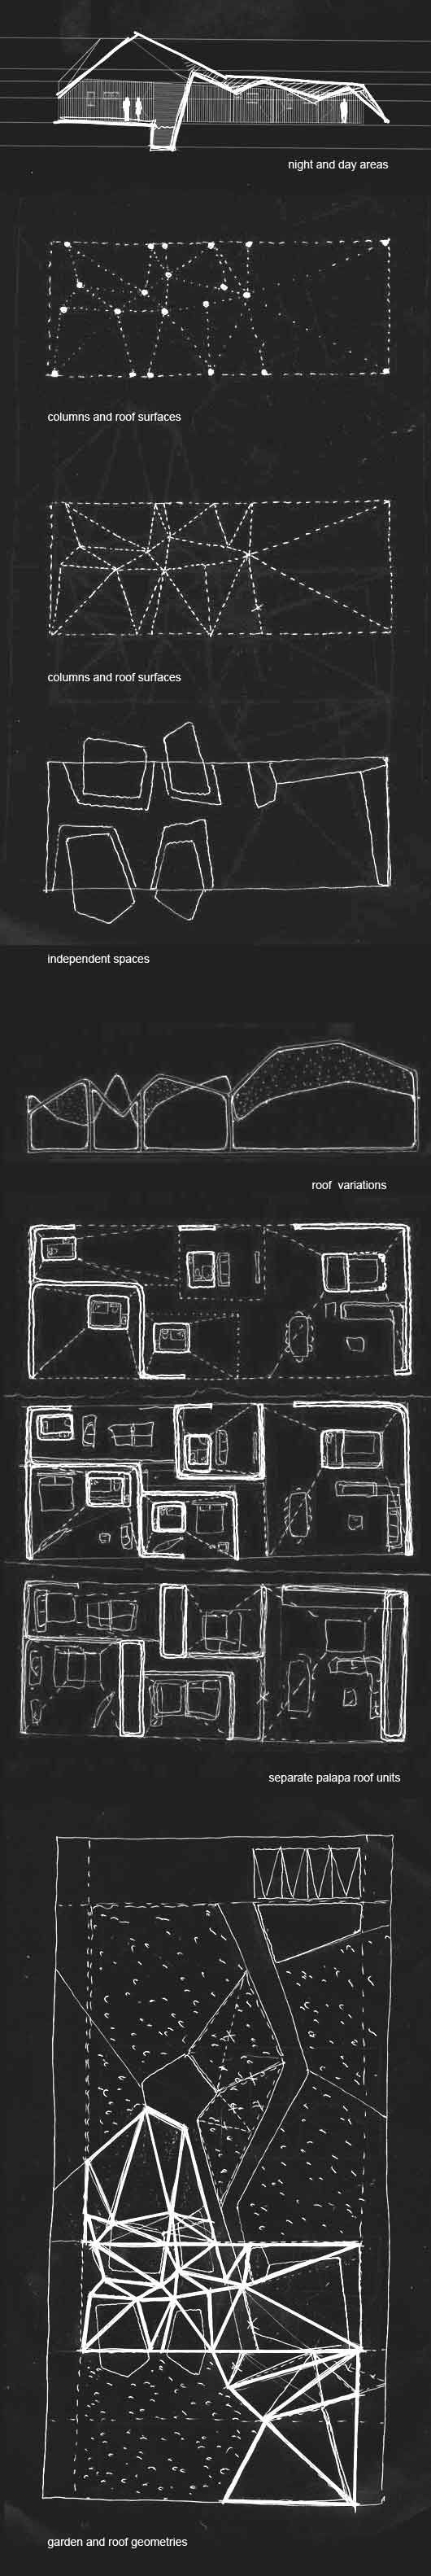 Productora – Casa Musso, Puerto Escondido , Oaxaca, Mexico – Conceptual drawings - first proposals